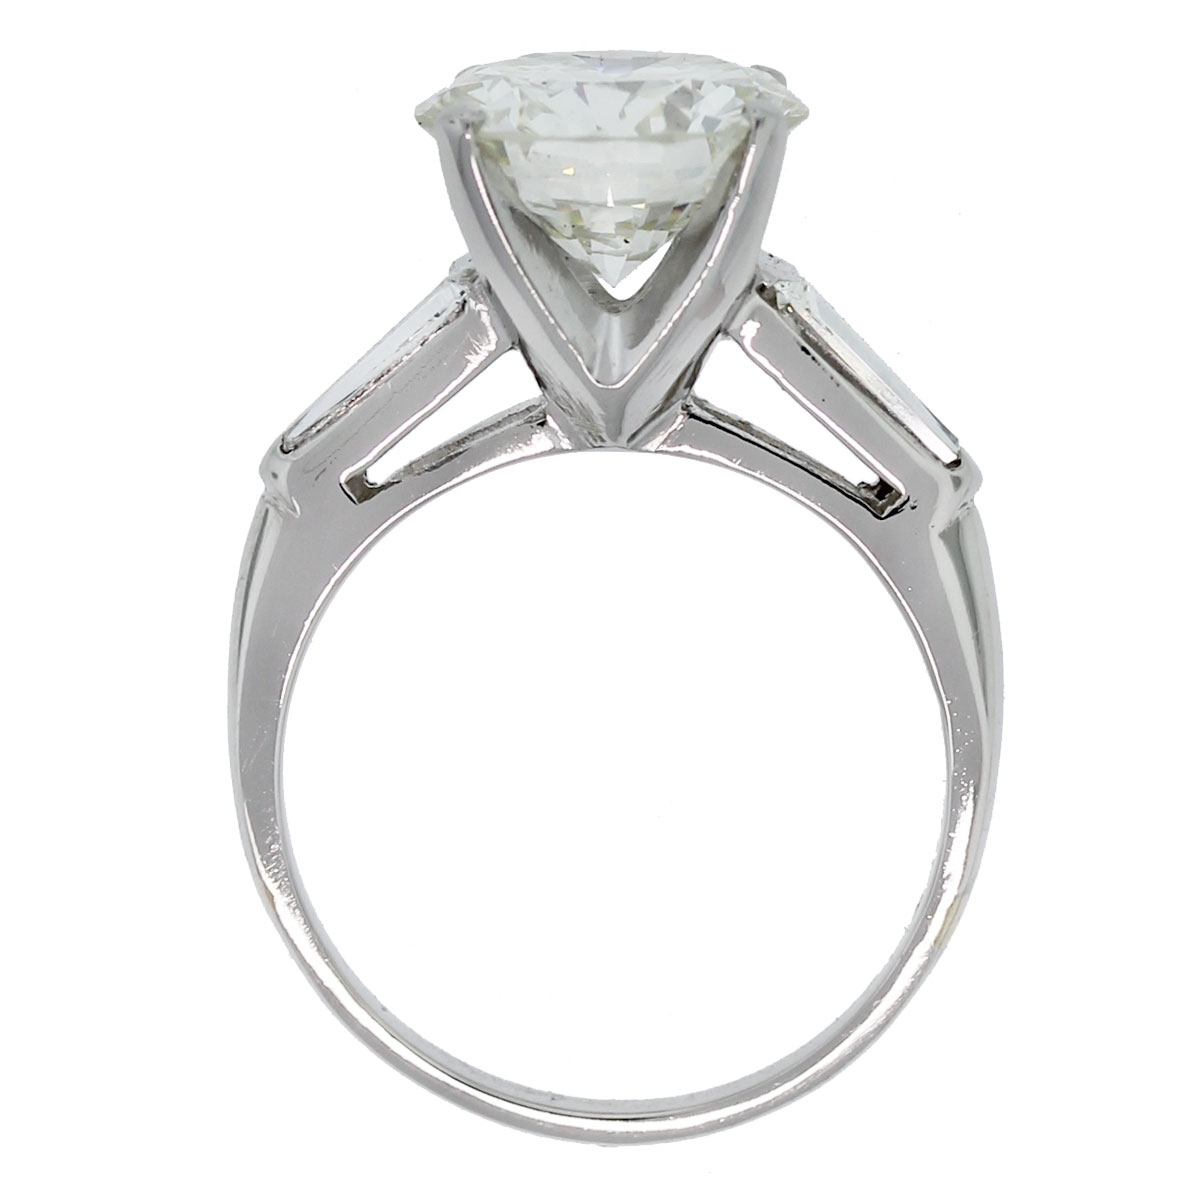 Check out this Platinum EGL Certified Round Brilliant & Baguette Diamond Engagement Ring!